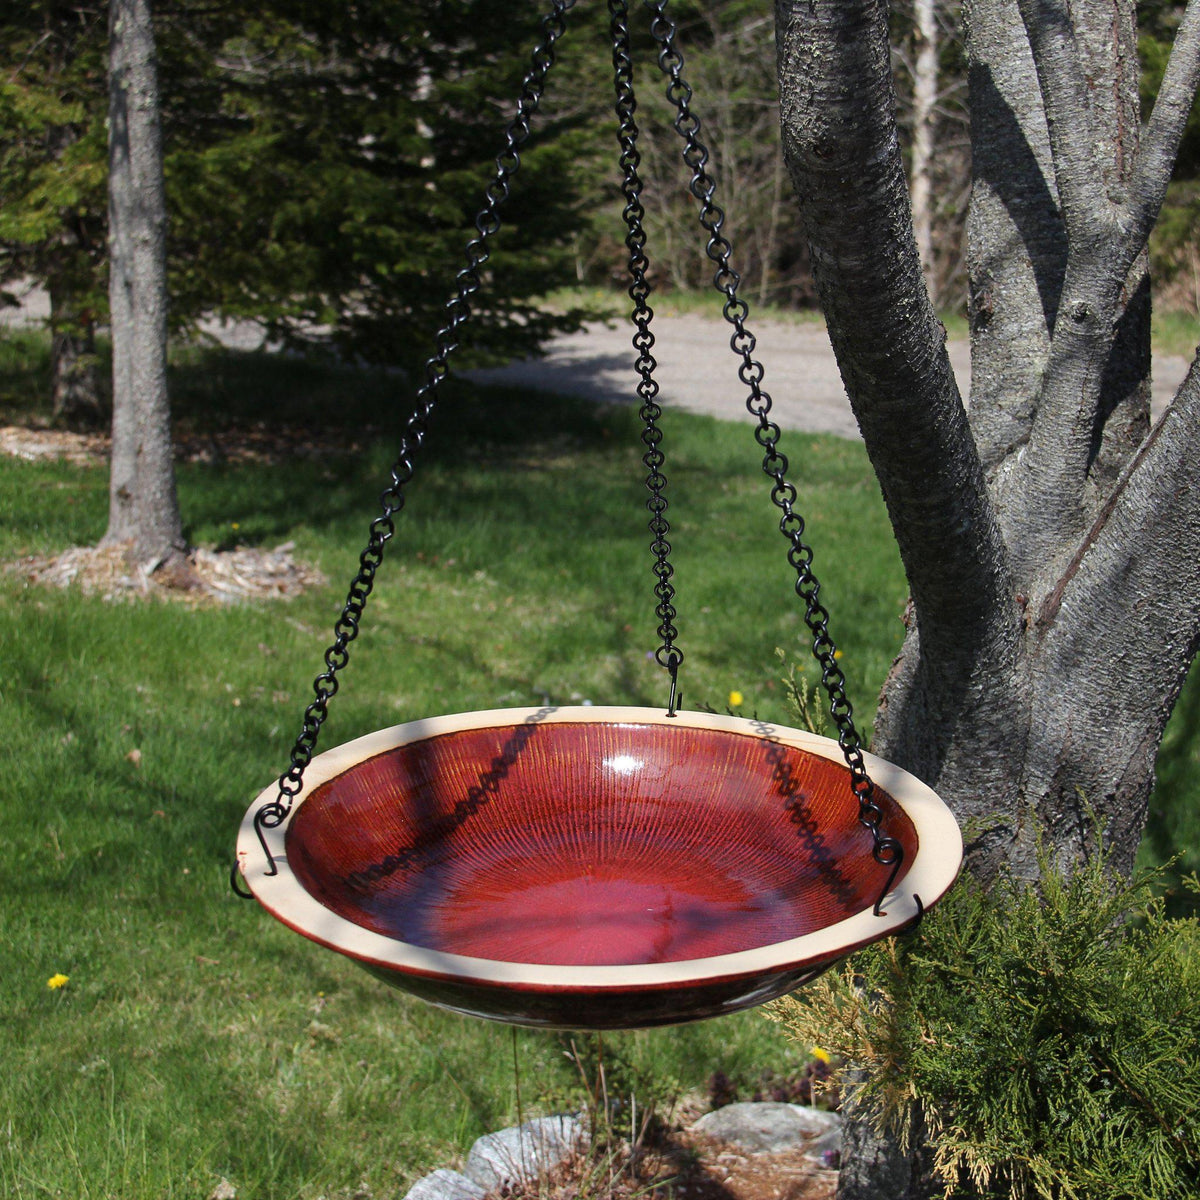 Radial Bird Bath - Hanging Style